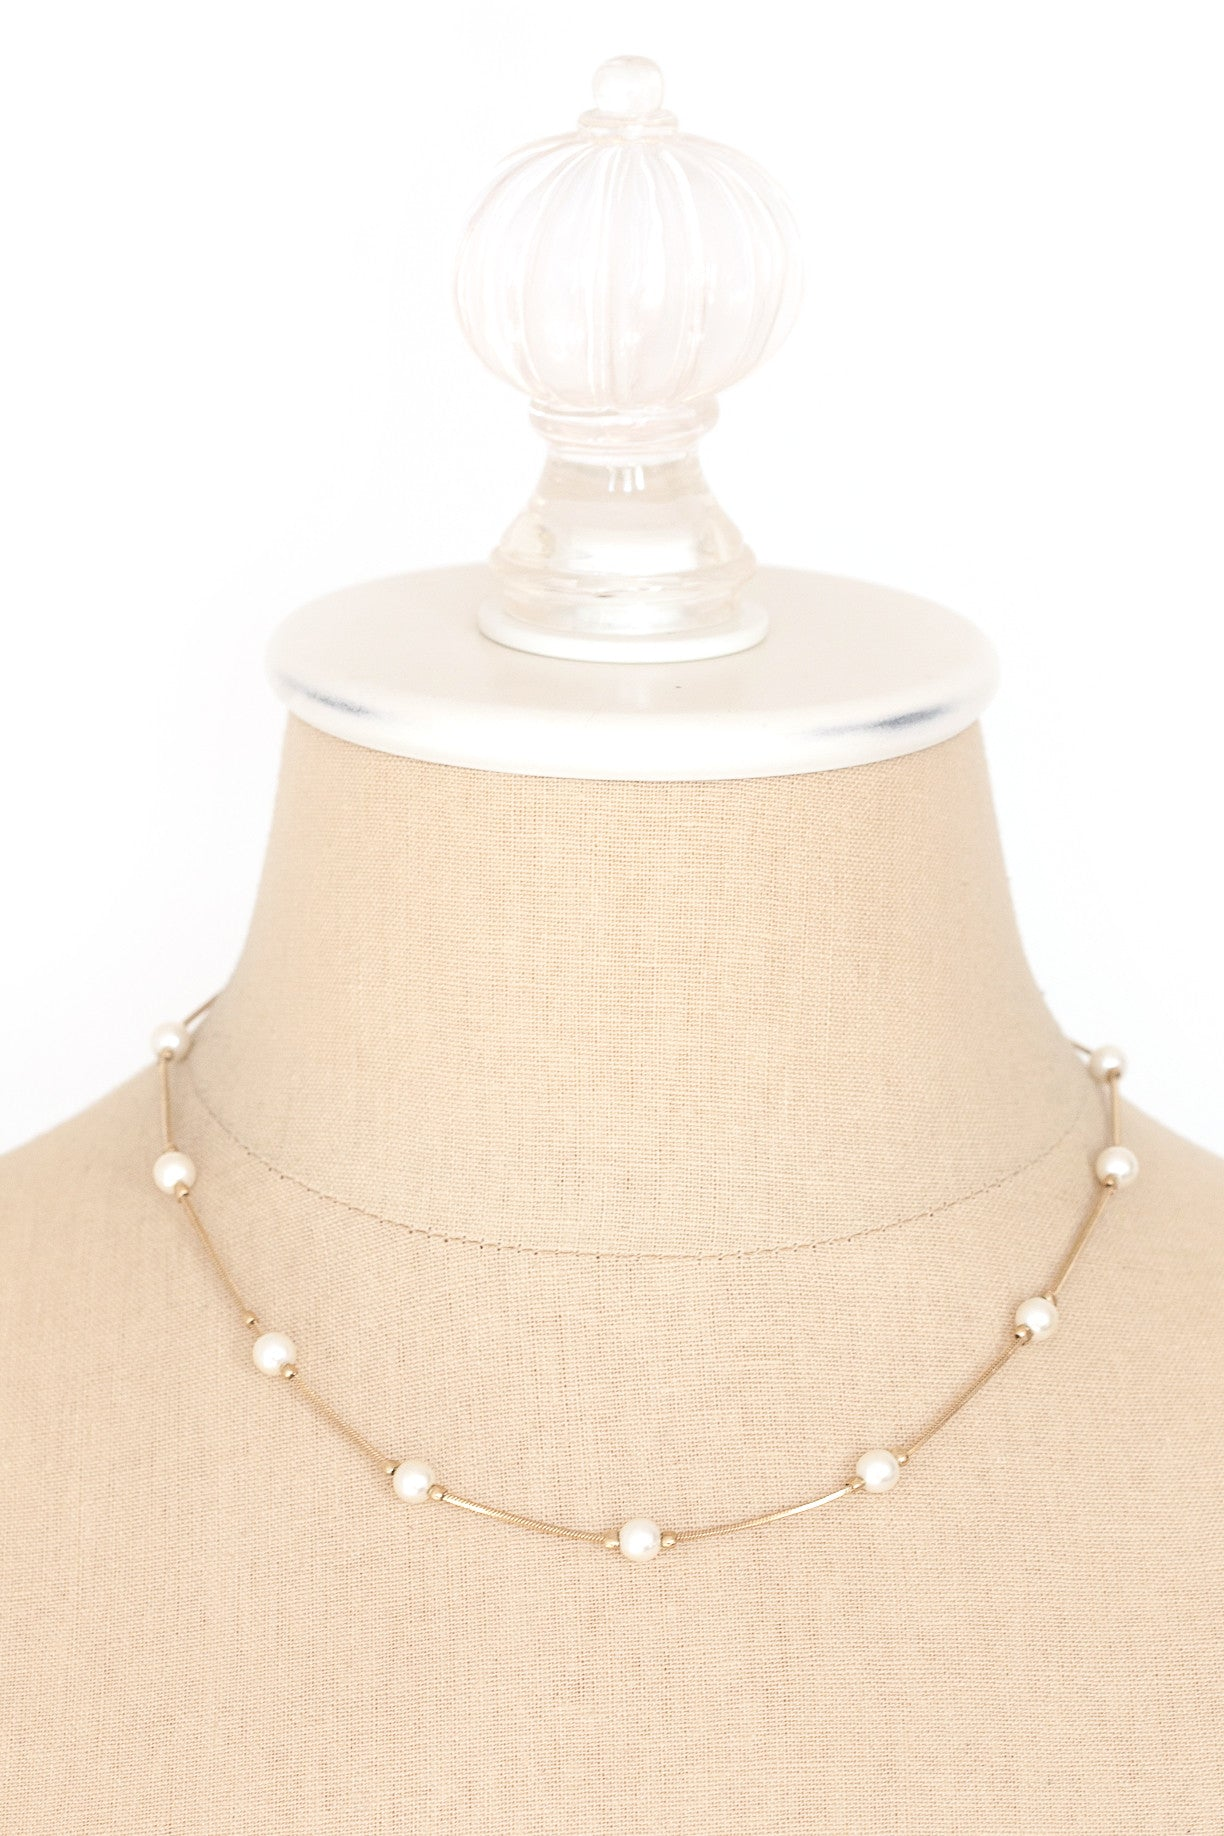 80's__Monet__Dainty Pearl Necklace